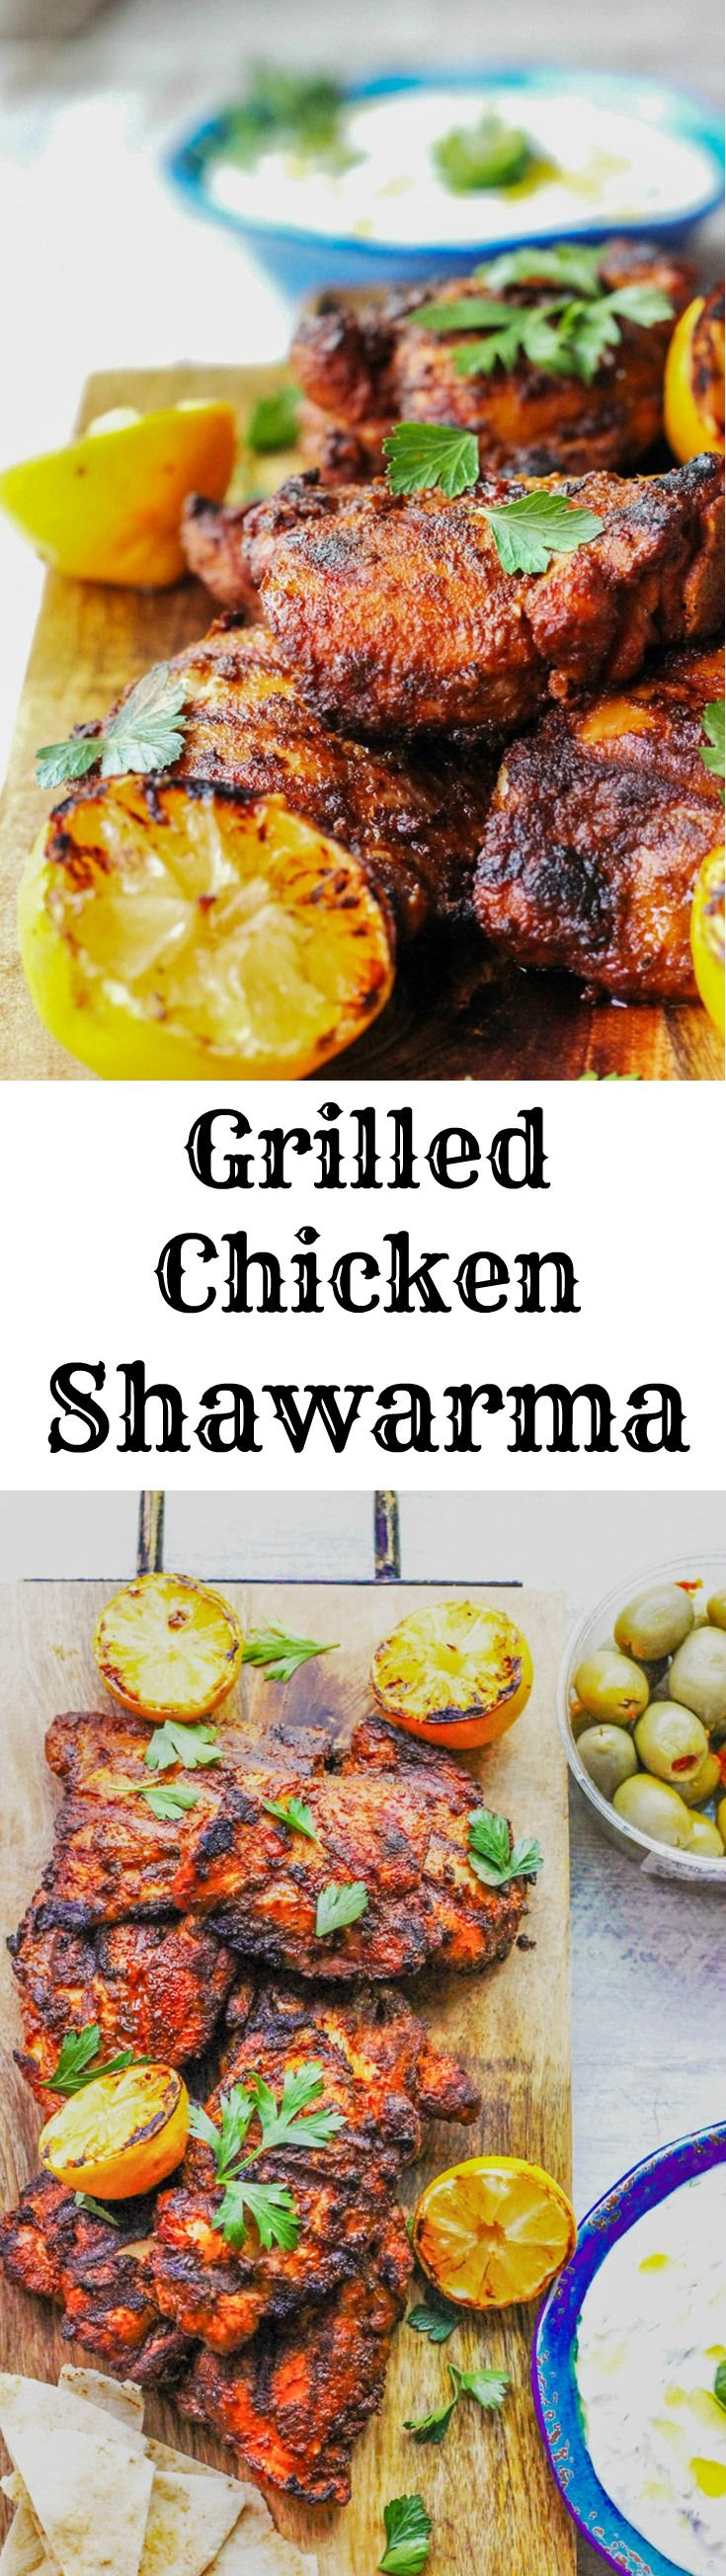 "Grilled Chicken Shawarma is an amazing dish of Middle Eastern flavors that comes together super quick, smells divine and disappears from plates in seconds. Try this chicken recipe, full of fragrant spices, for your next BBQ and you'll surely ""wow"" all your guests."